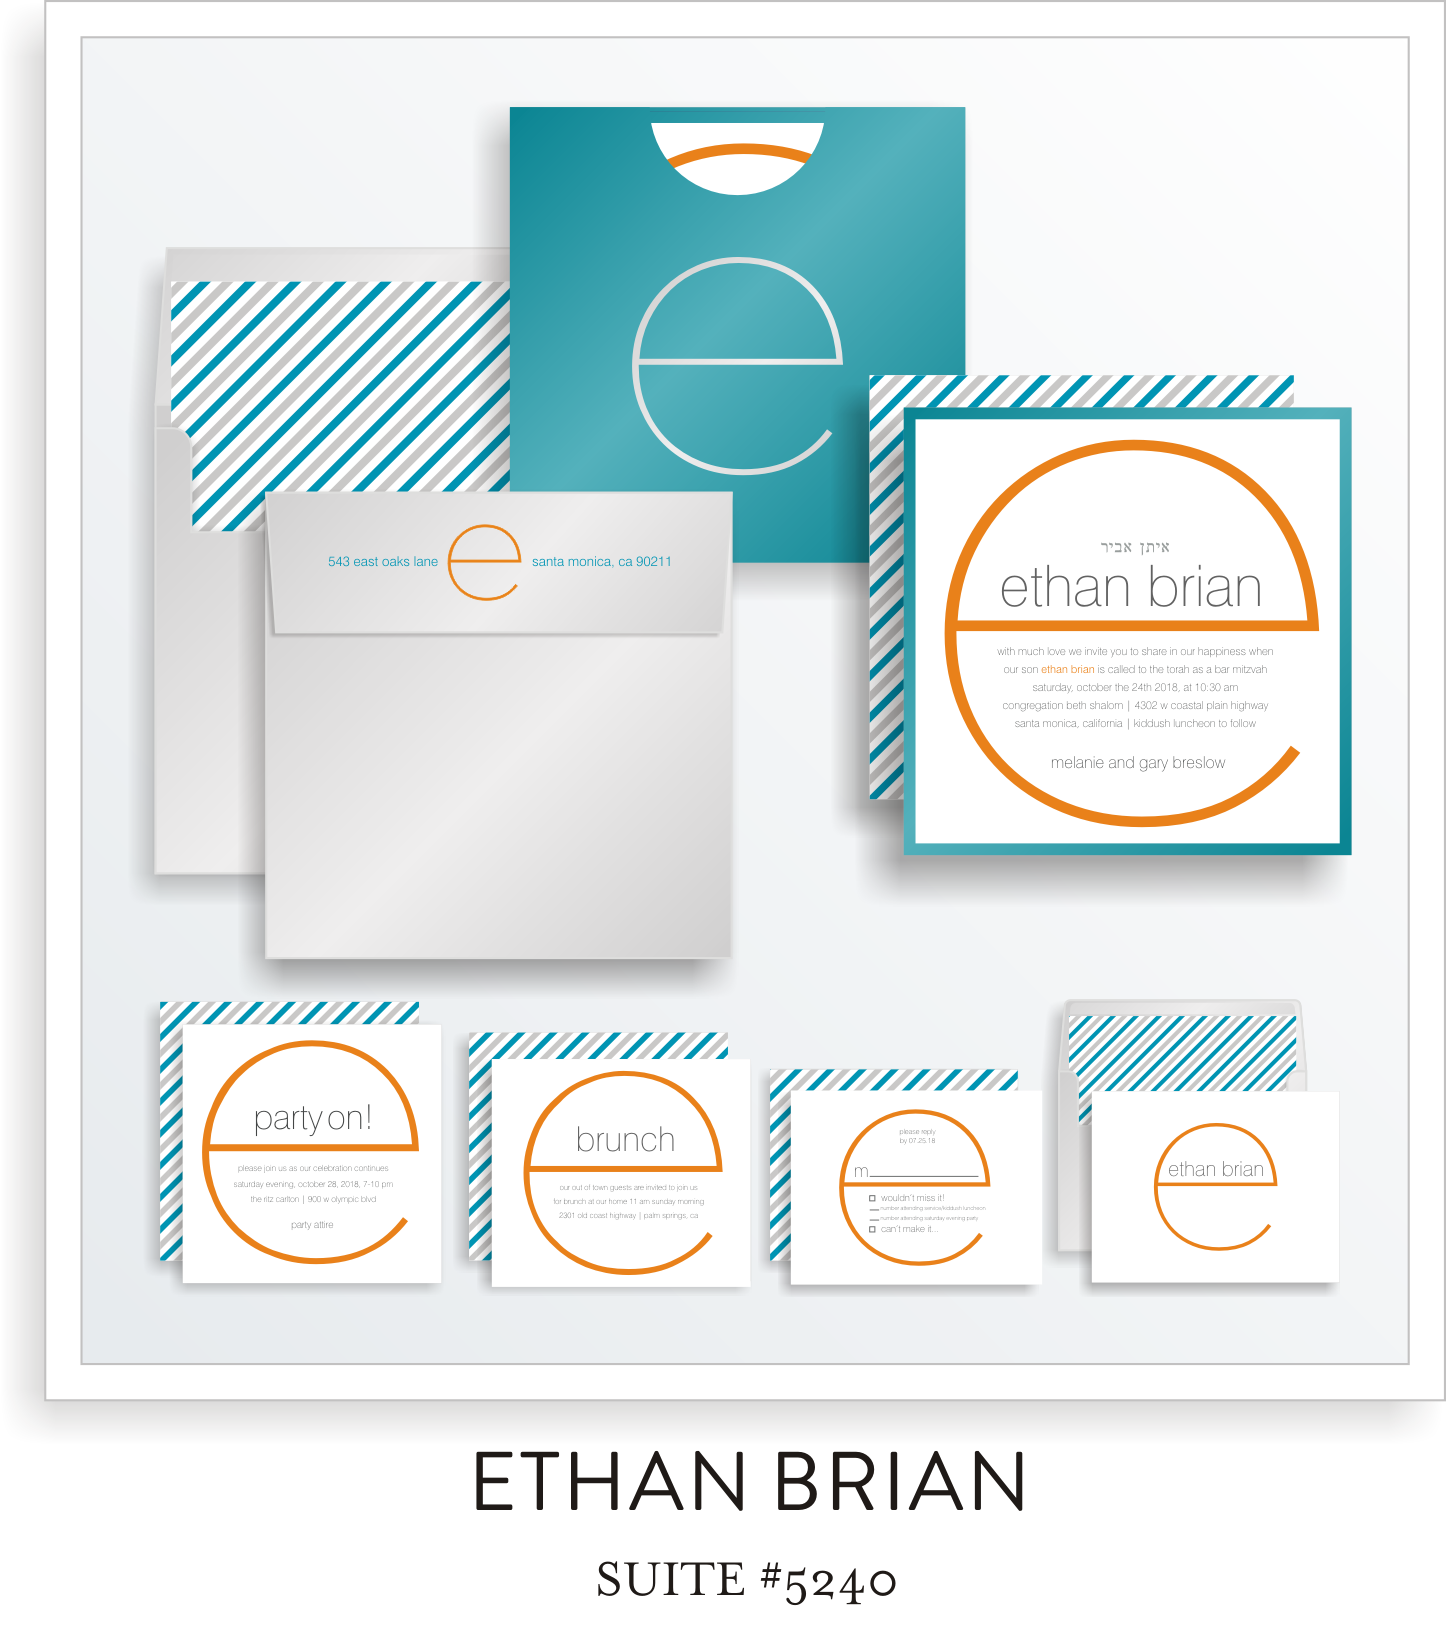 Copy of Bar Mitzvah Invitation Suite 5240 - Ethan Brian